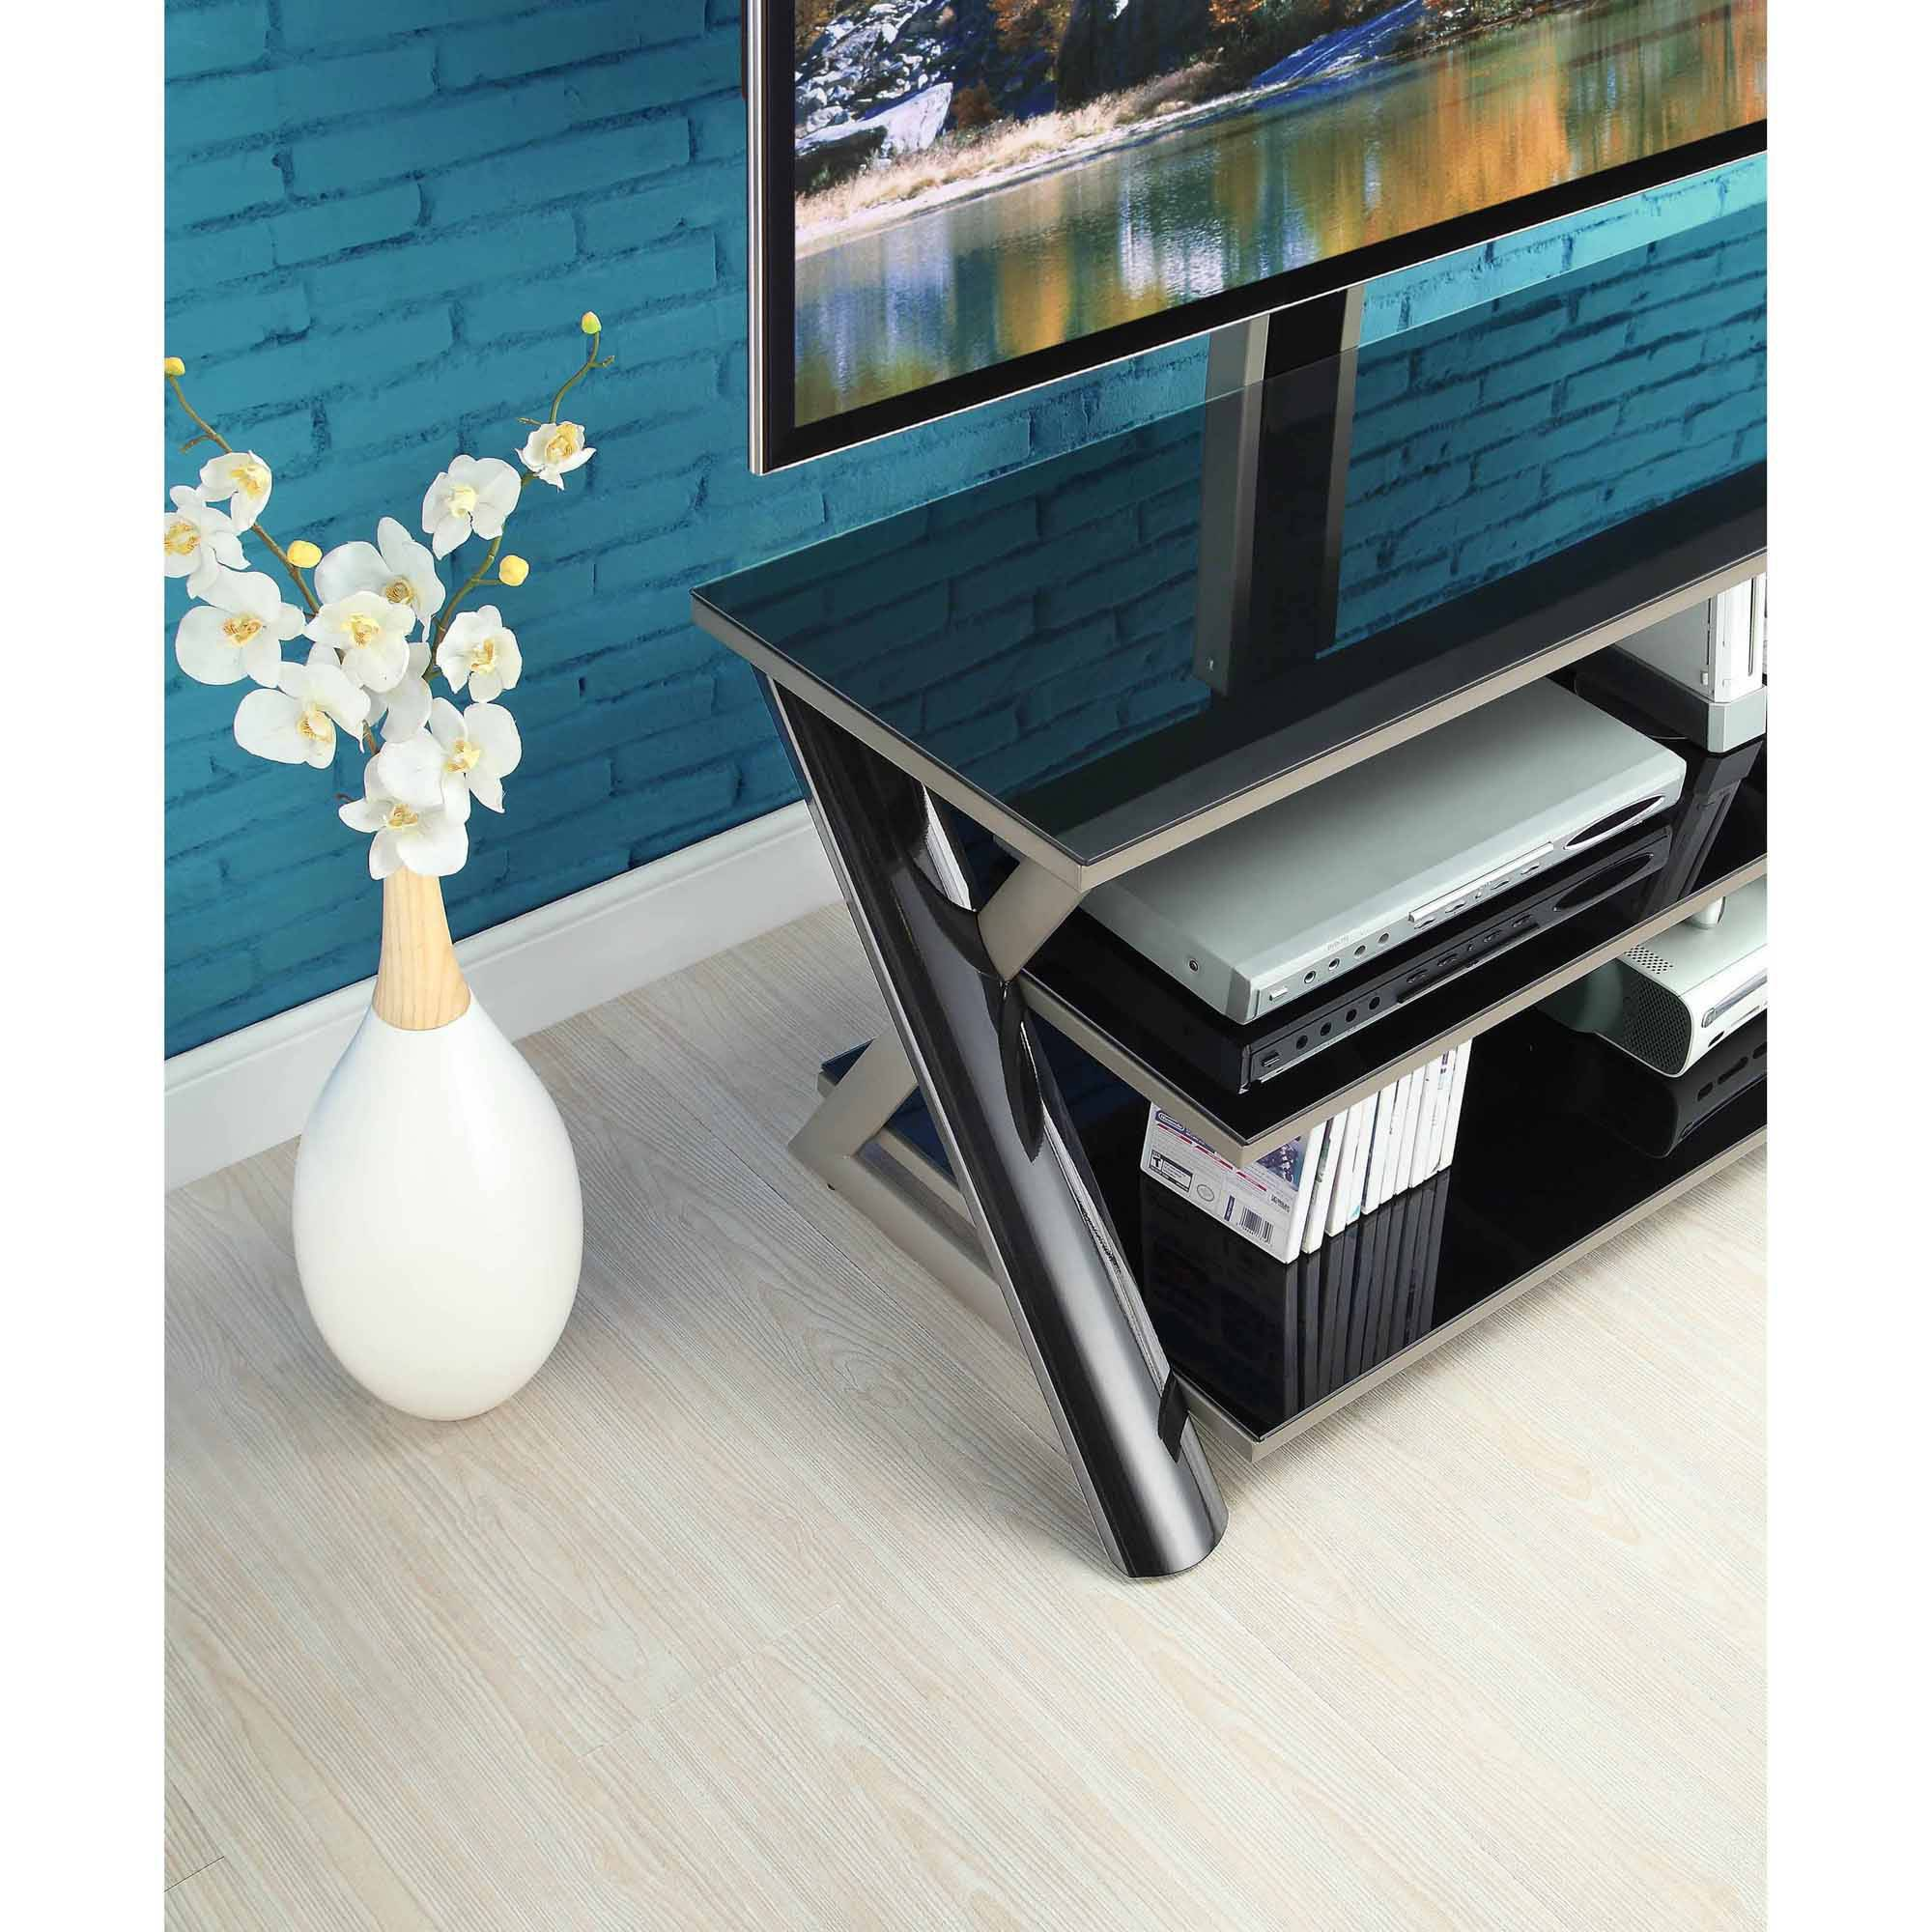 Exciting whalen tv stand for home furniture design with whalen 3-in-1 tv stand